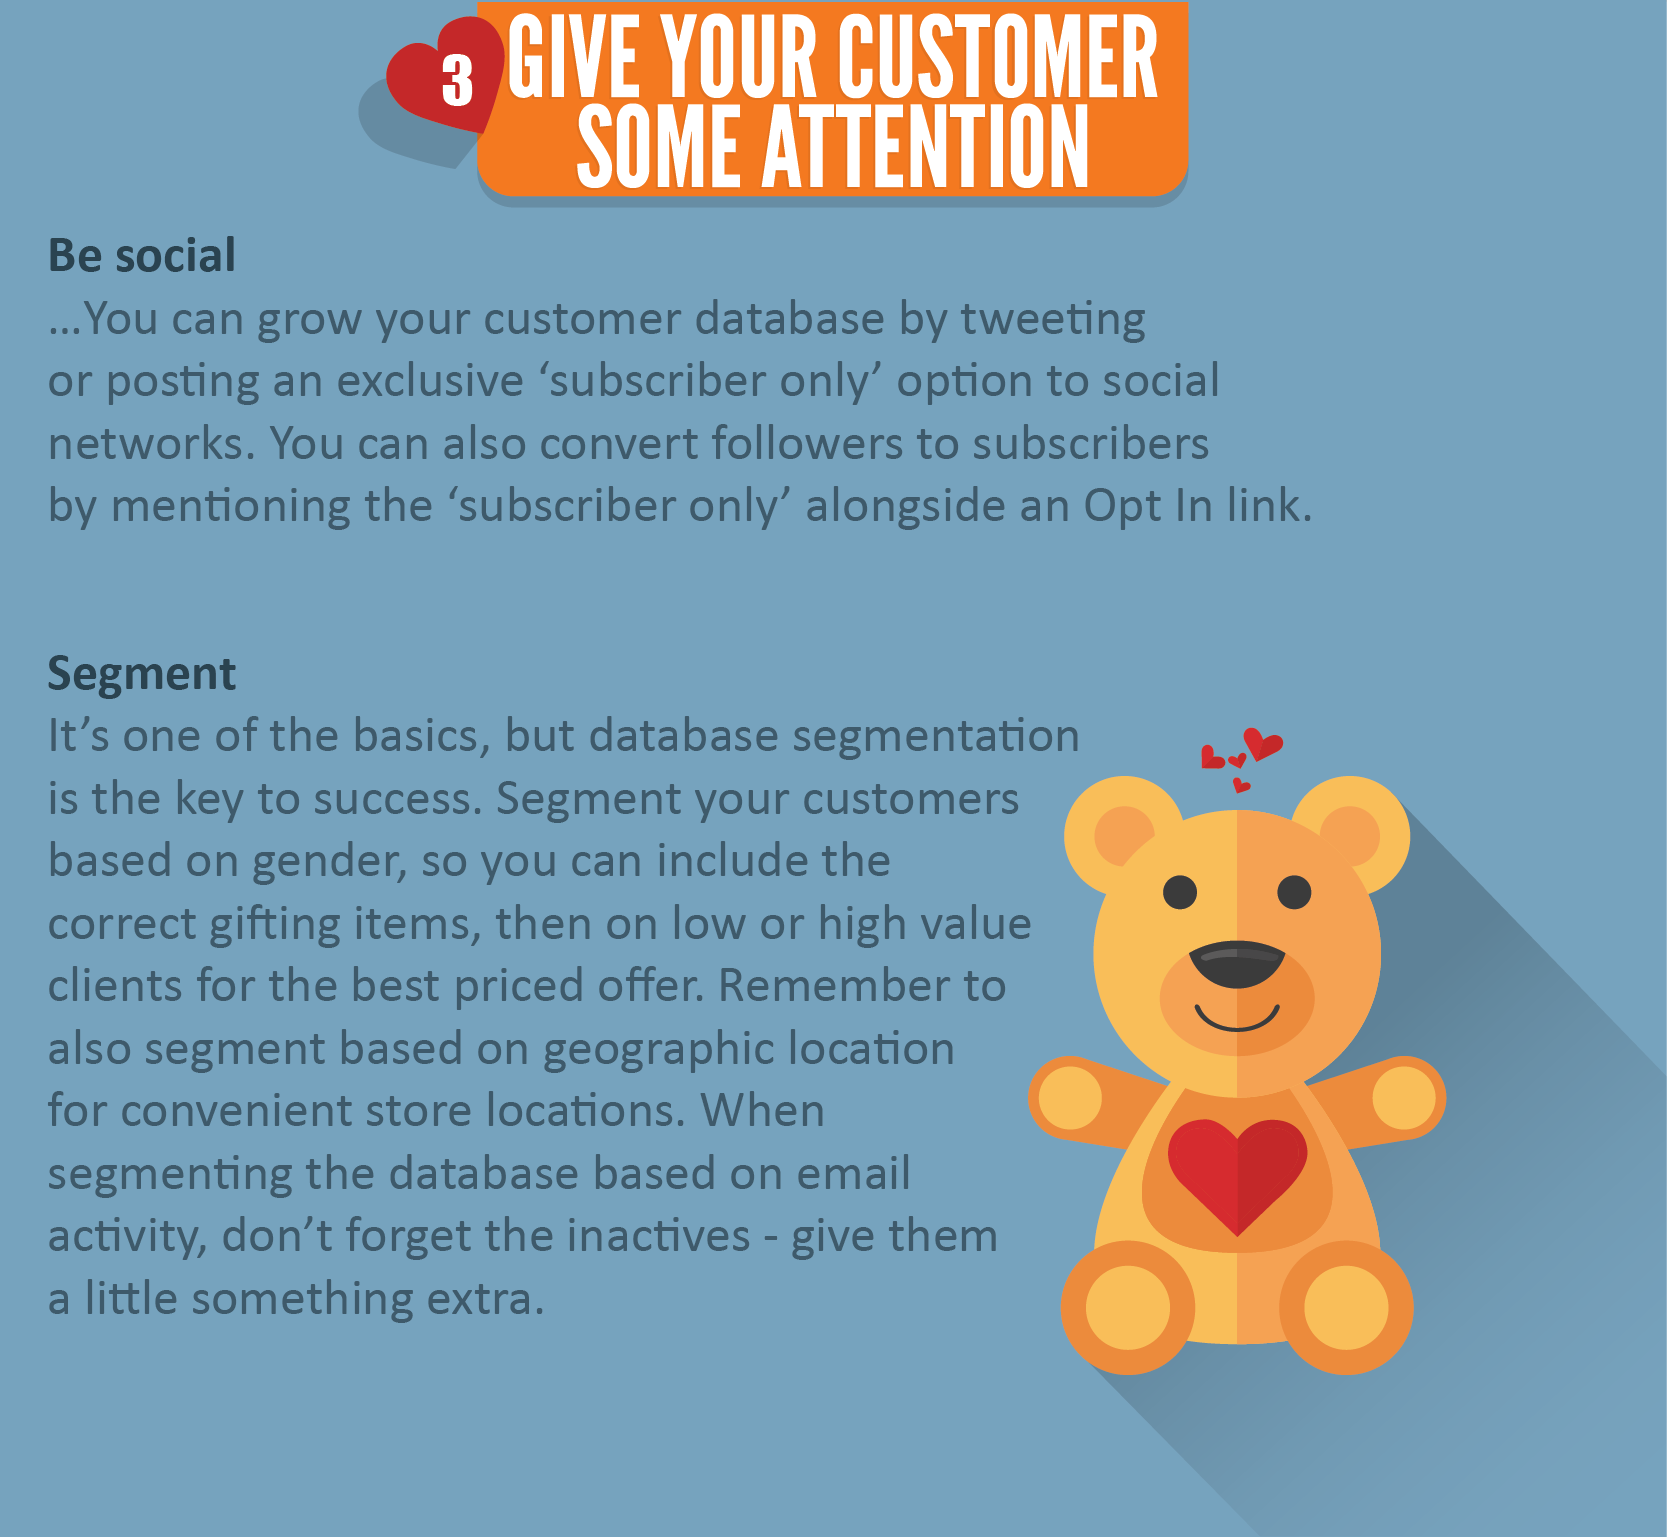 Give your Customers some attention